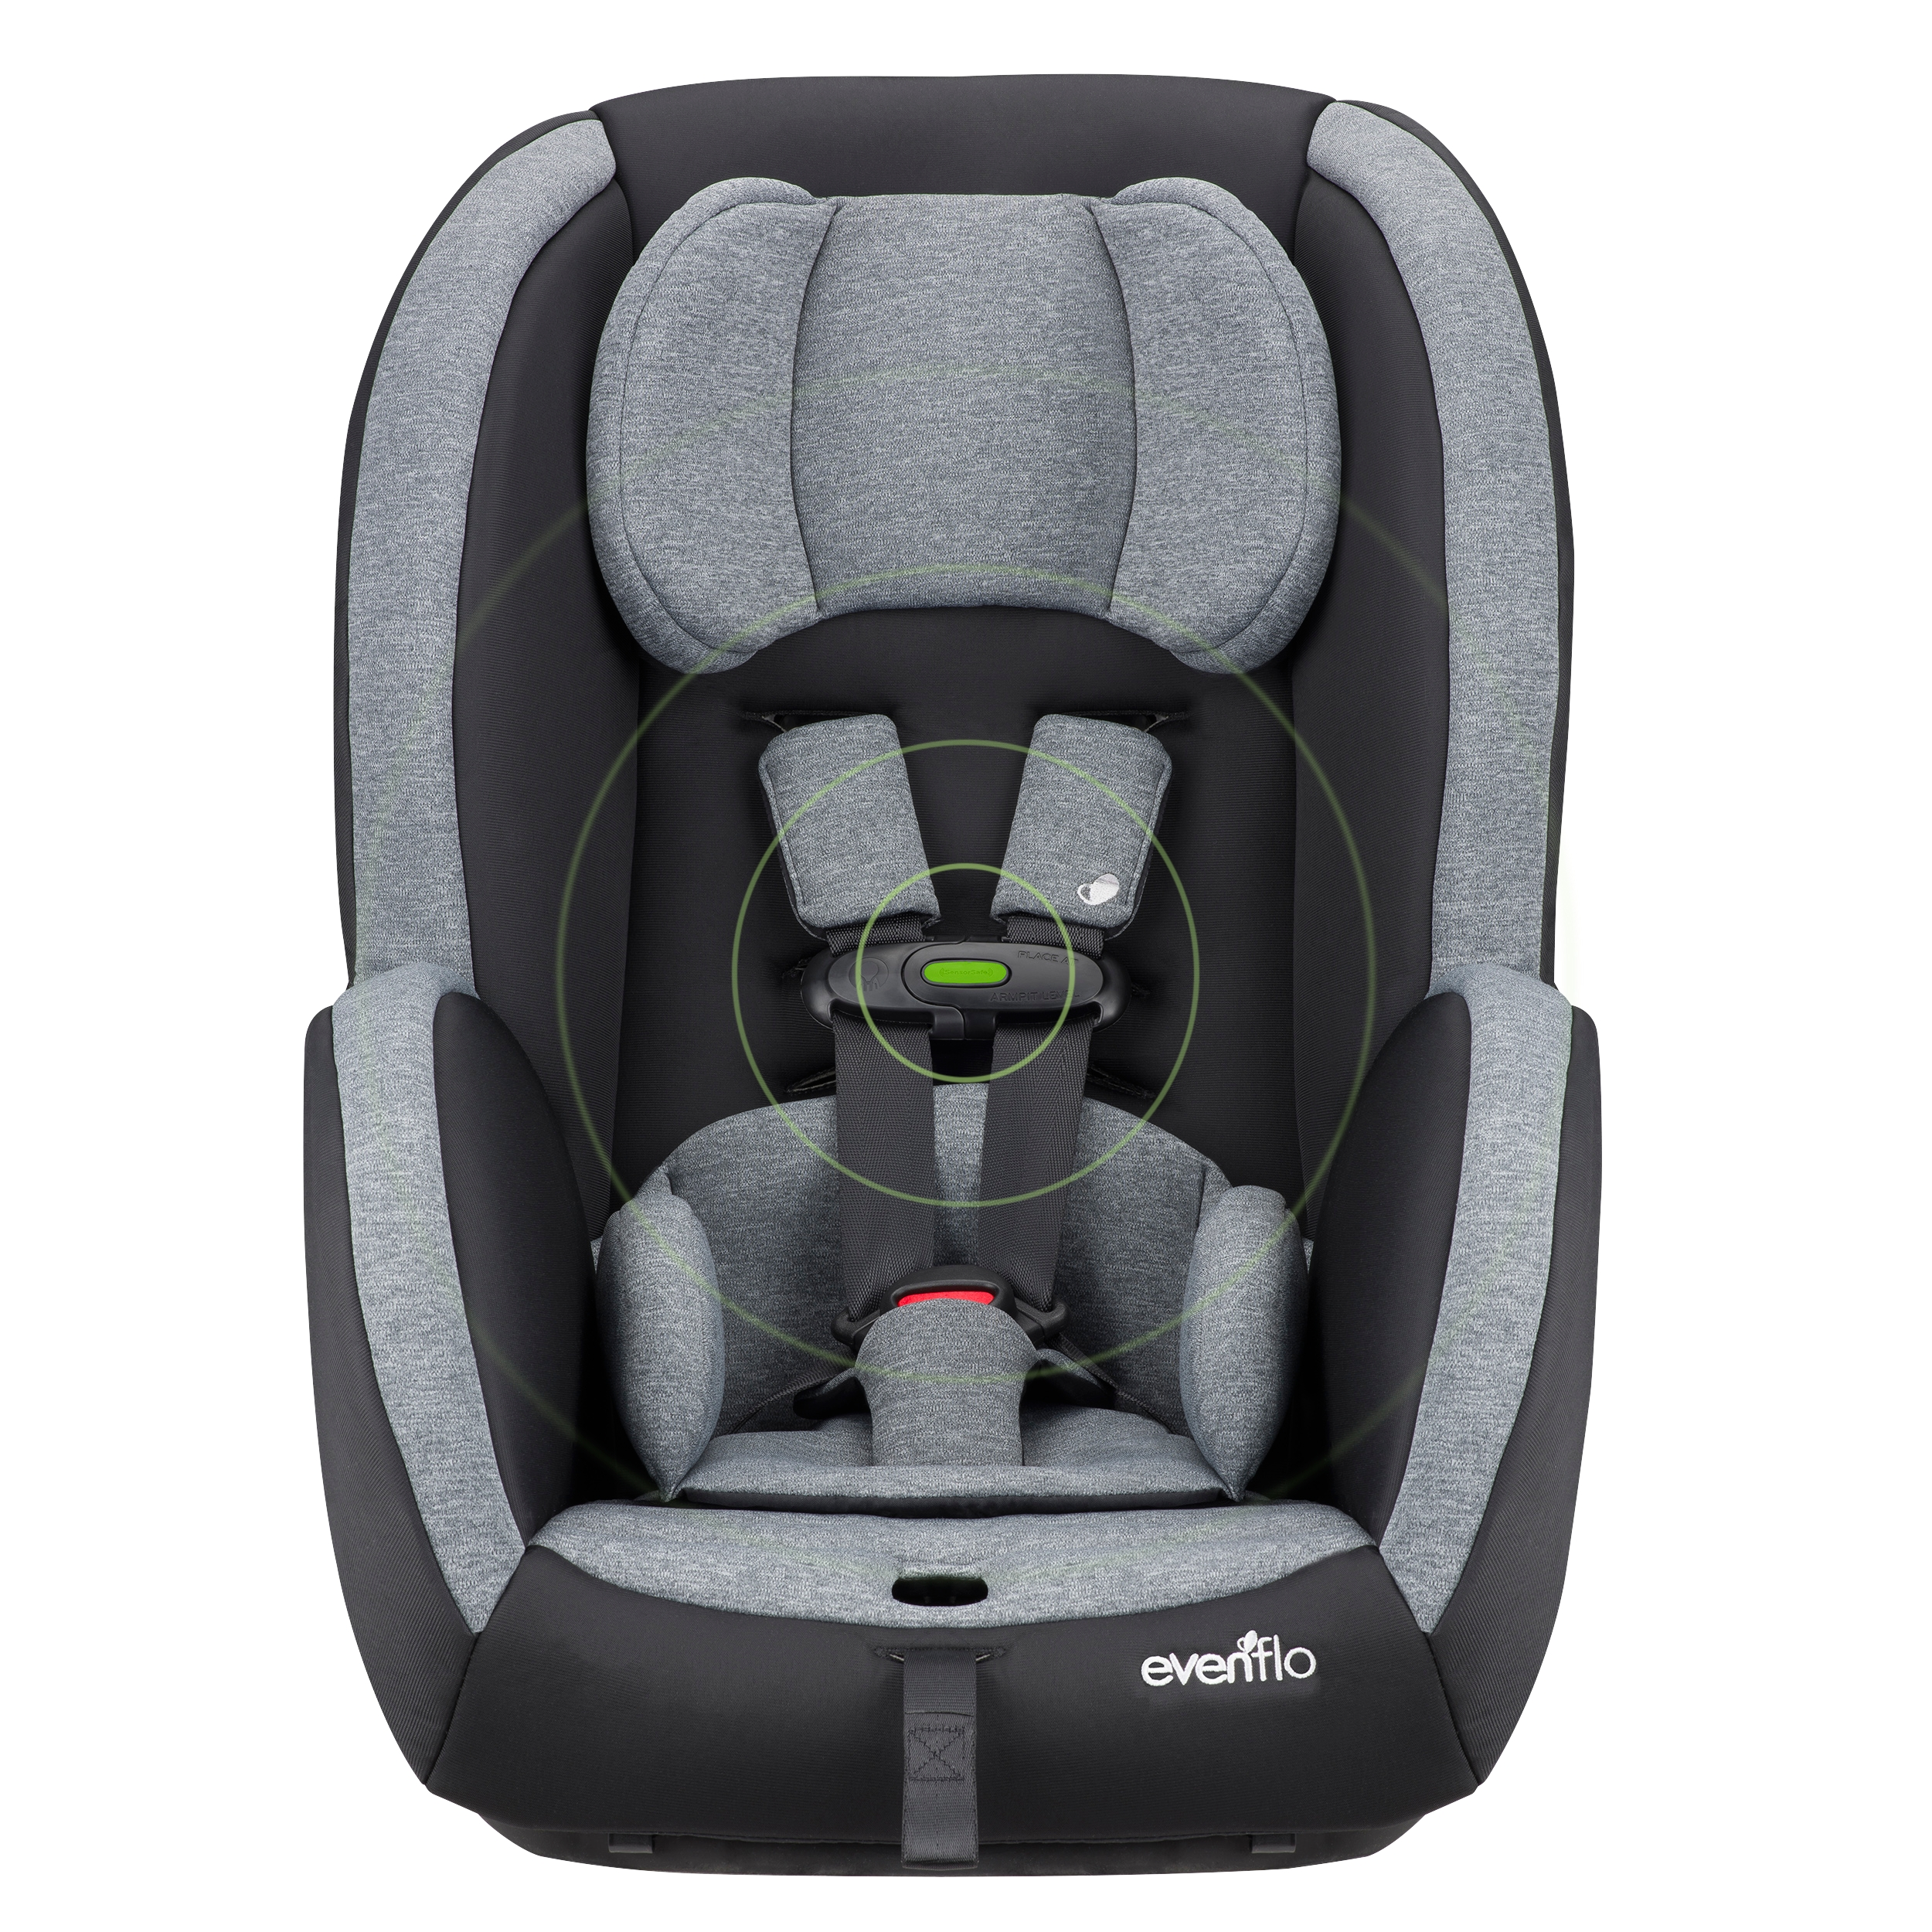 small resolution of walmart and evenflo buckle up for safety and introduce new sensorsafe titan convertible car seat business wire